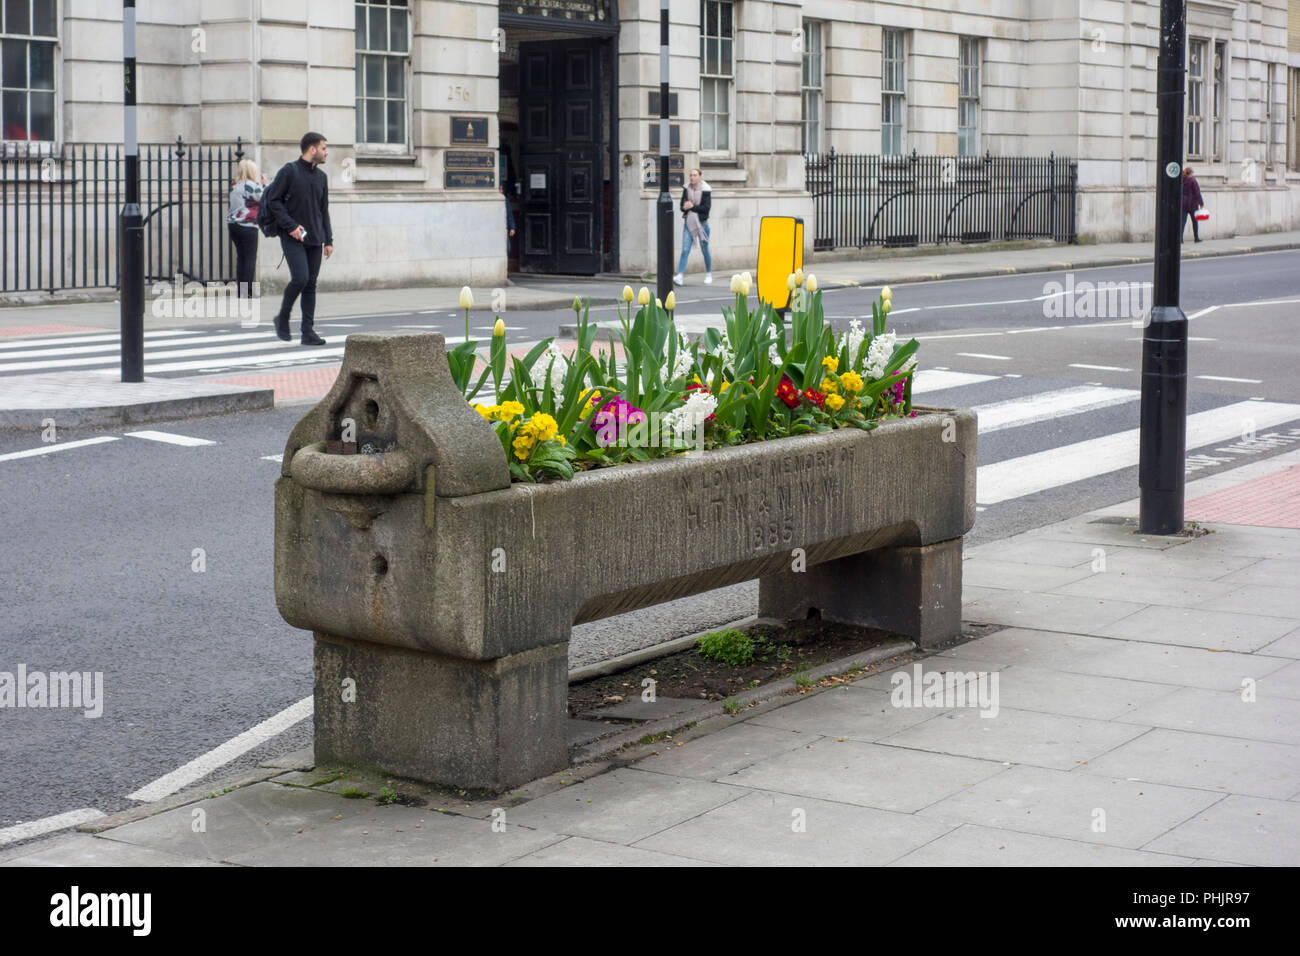 Historic drinking trough planted with flowers, Metropolitan Drinking Fountain and Cattle Trough Association, City of London, UK - Stock Image